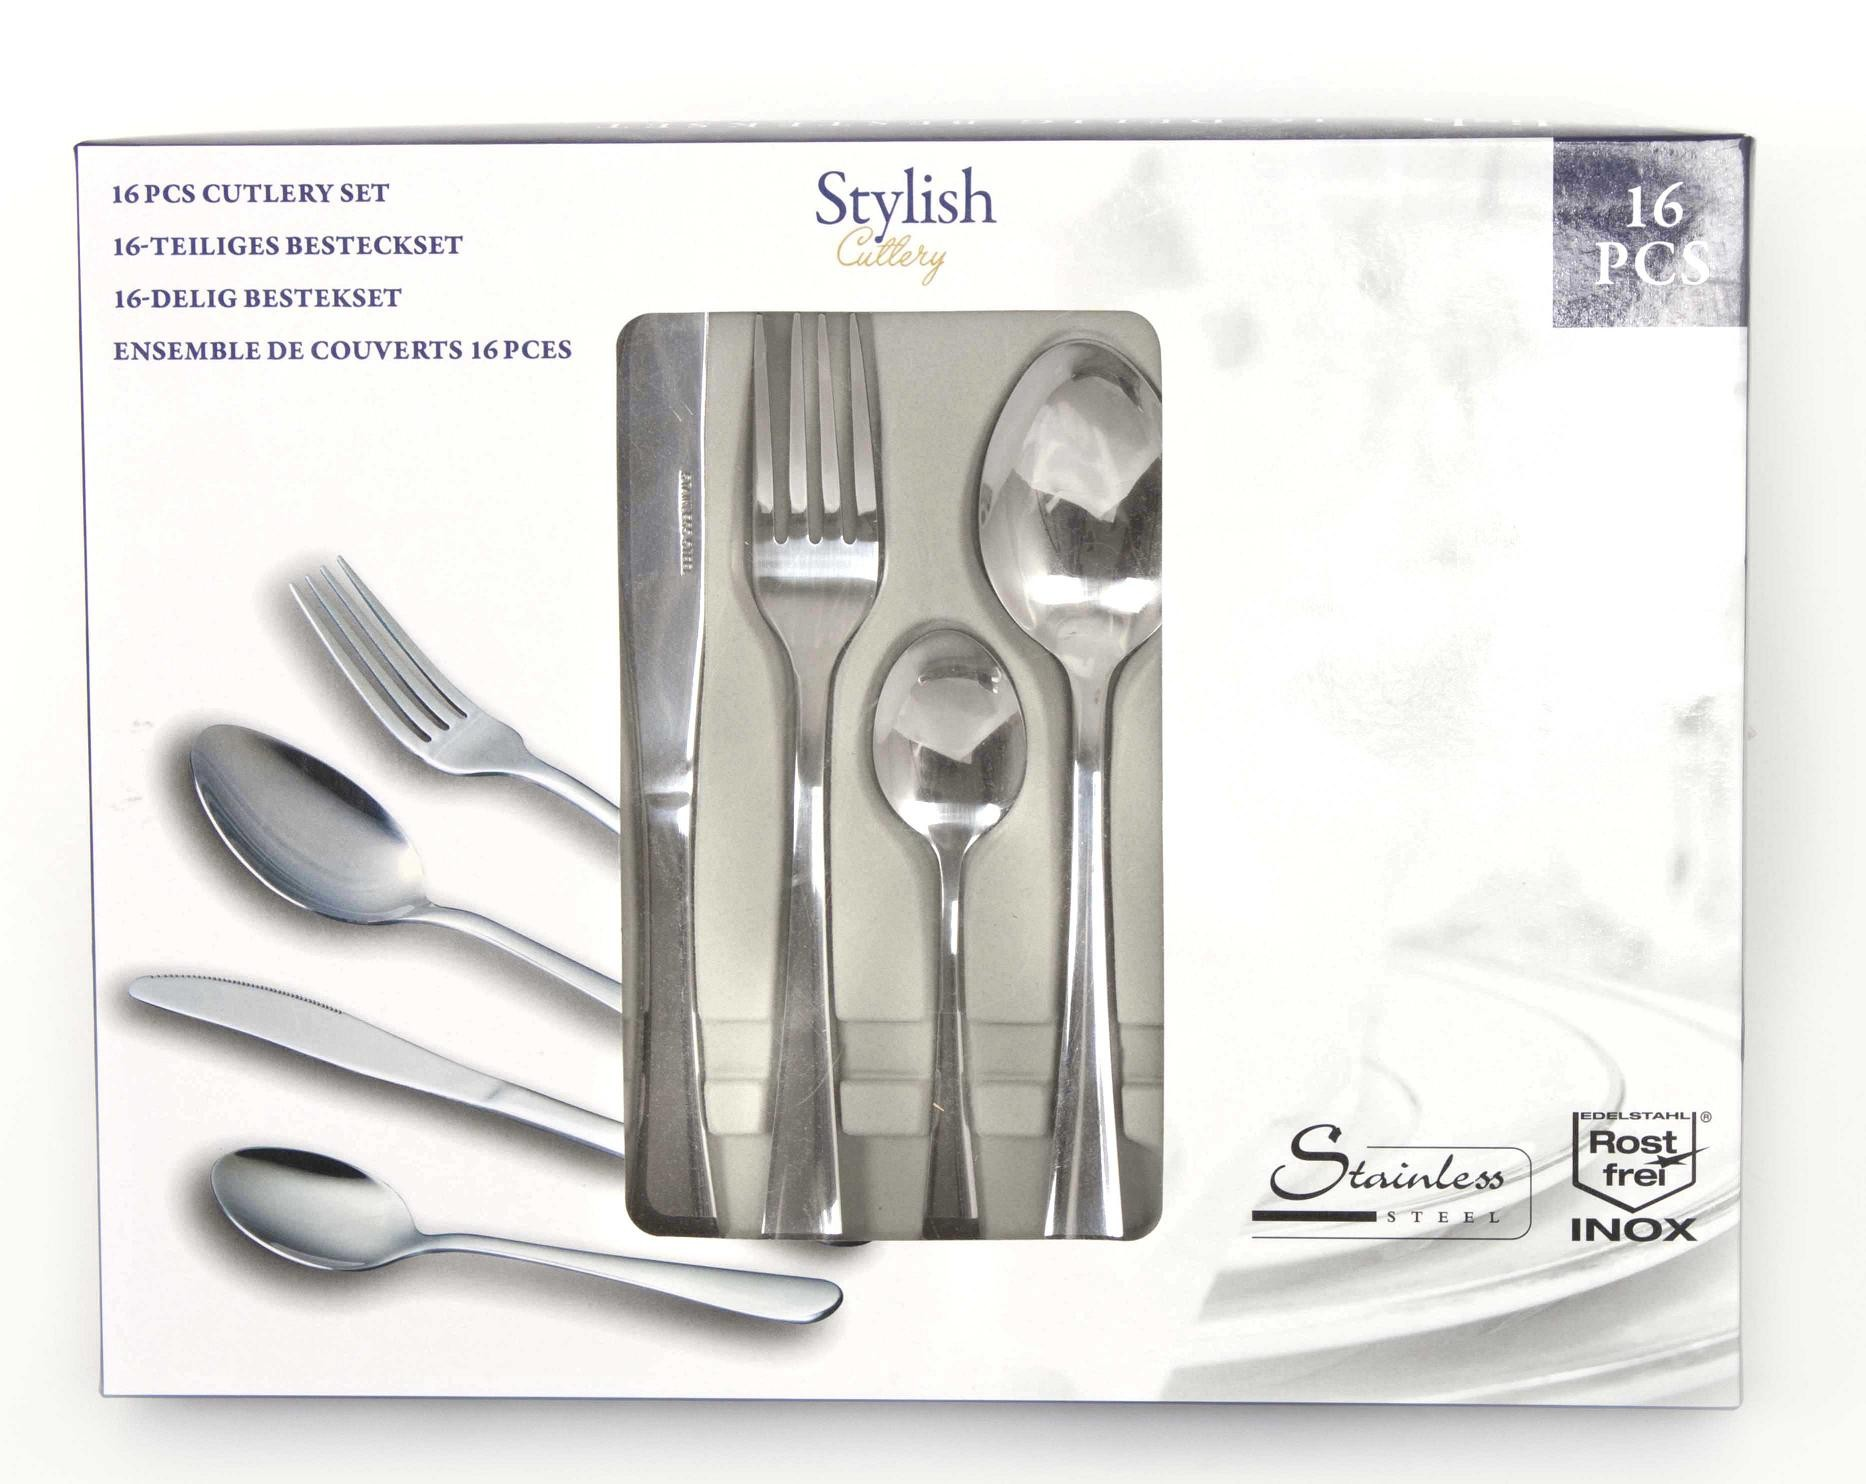 16 piece stylish kitchen stainless steel cutlery set tableware